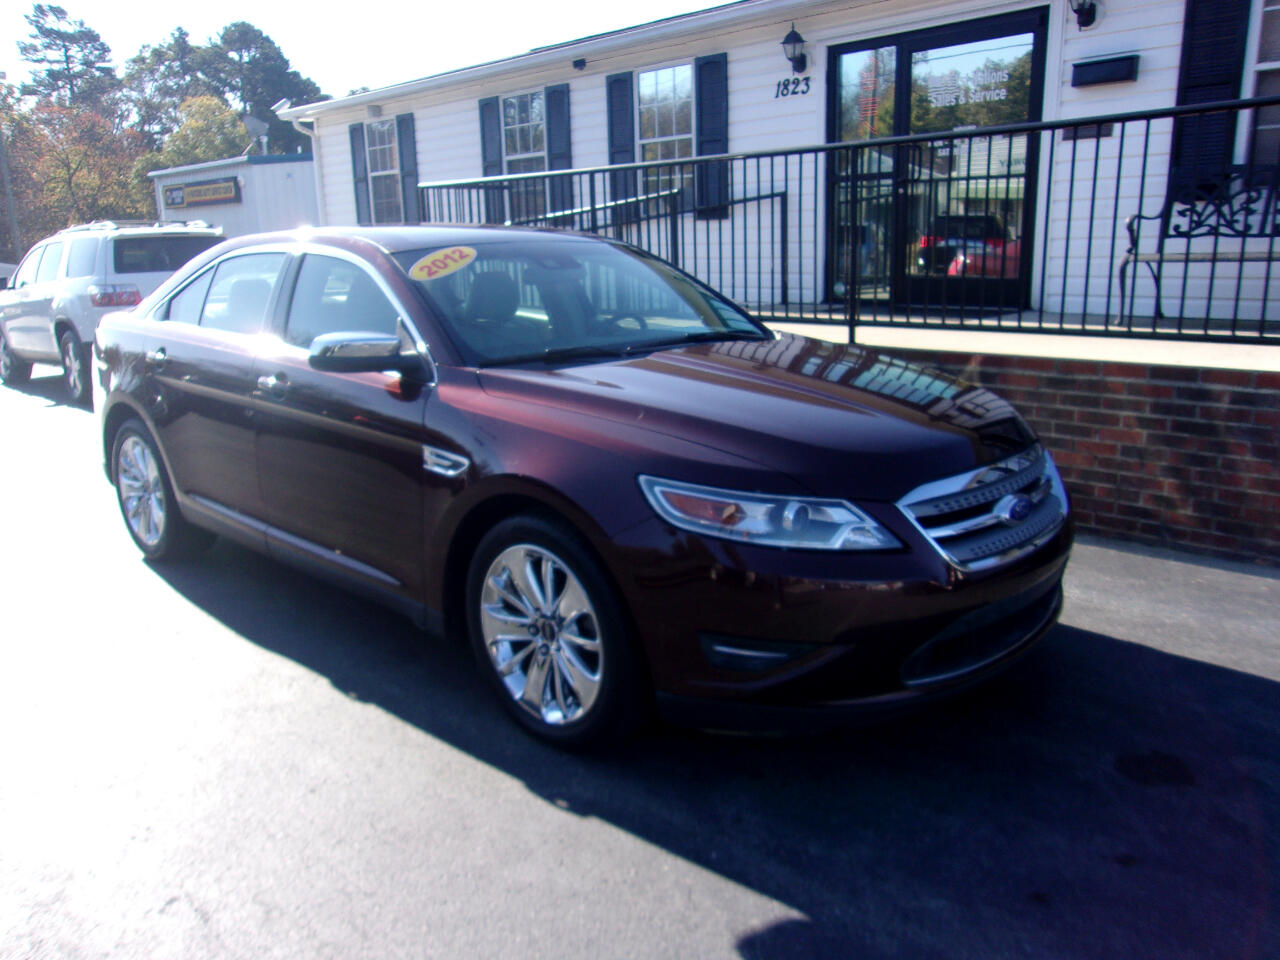 Ford Taurus 4dr Sdn Limited FWD 2012